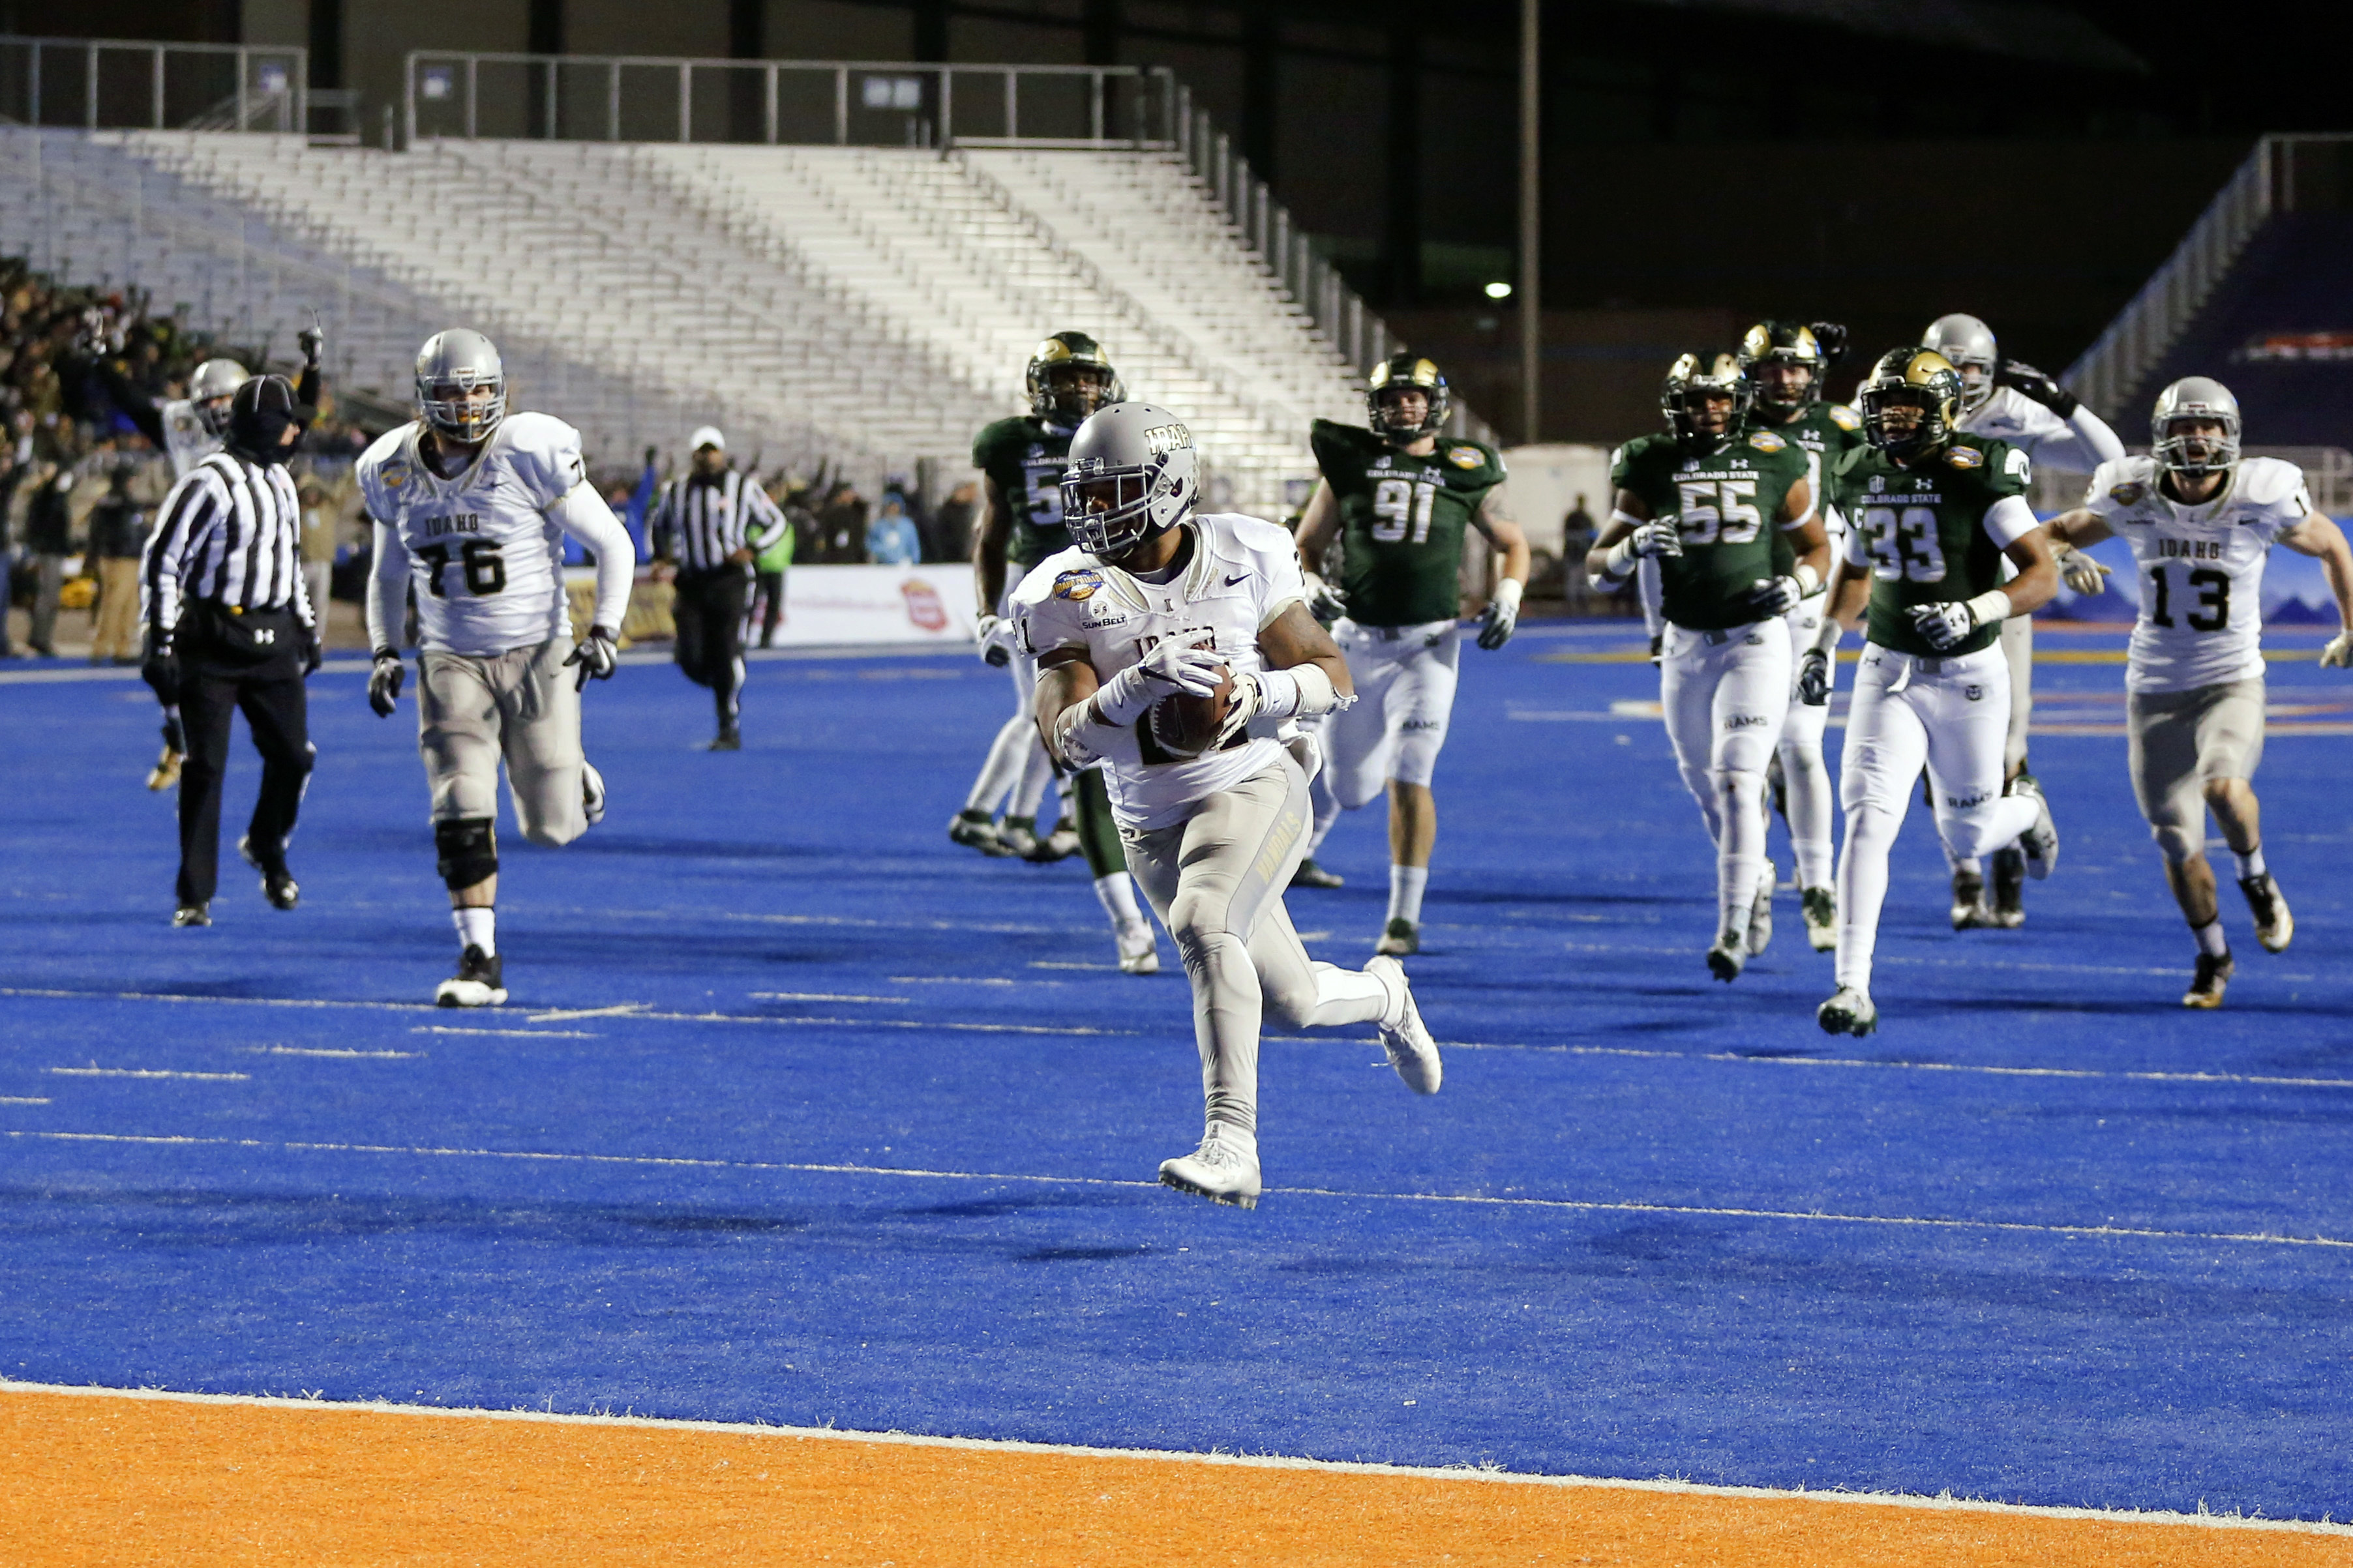 Idaho running back Isaiah Saunders (21) runs for a touchdown during the first half of the Famous Idaho Potato Bowl NCAA college football game against Colorado State in Boise, Idaho, Thursday, Dec. 22, 2016. (AP Photo/Otto Kitsinger)